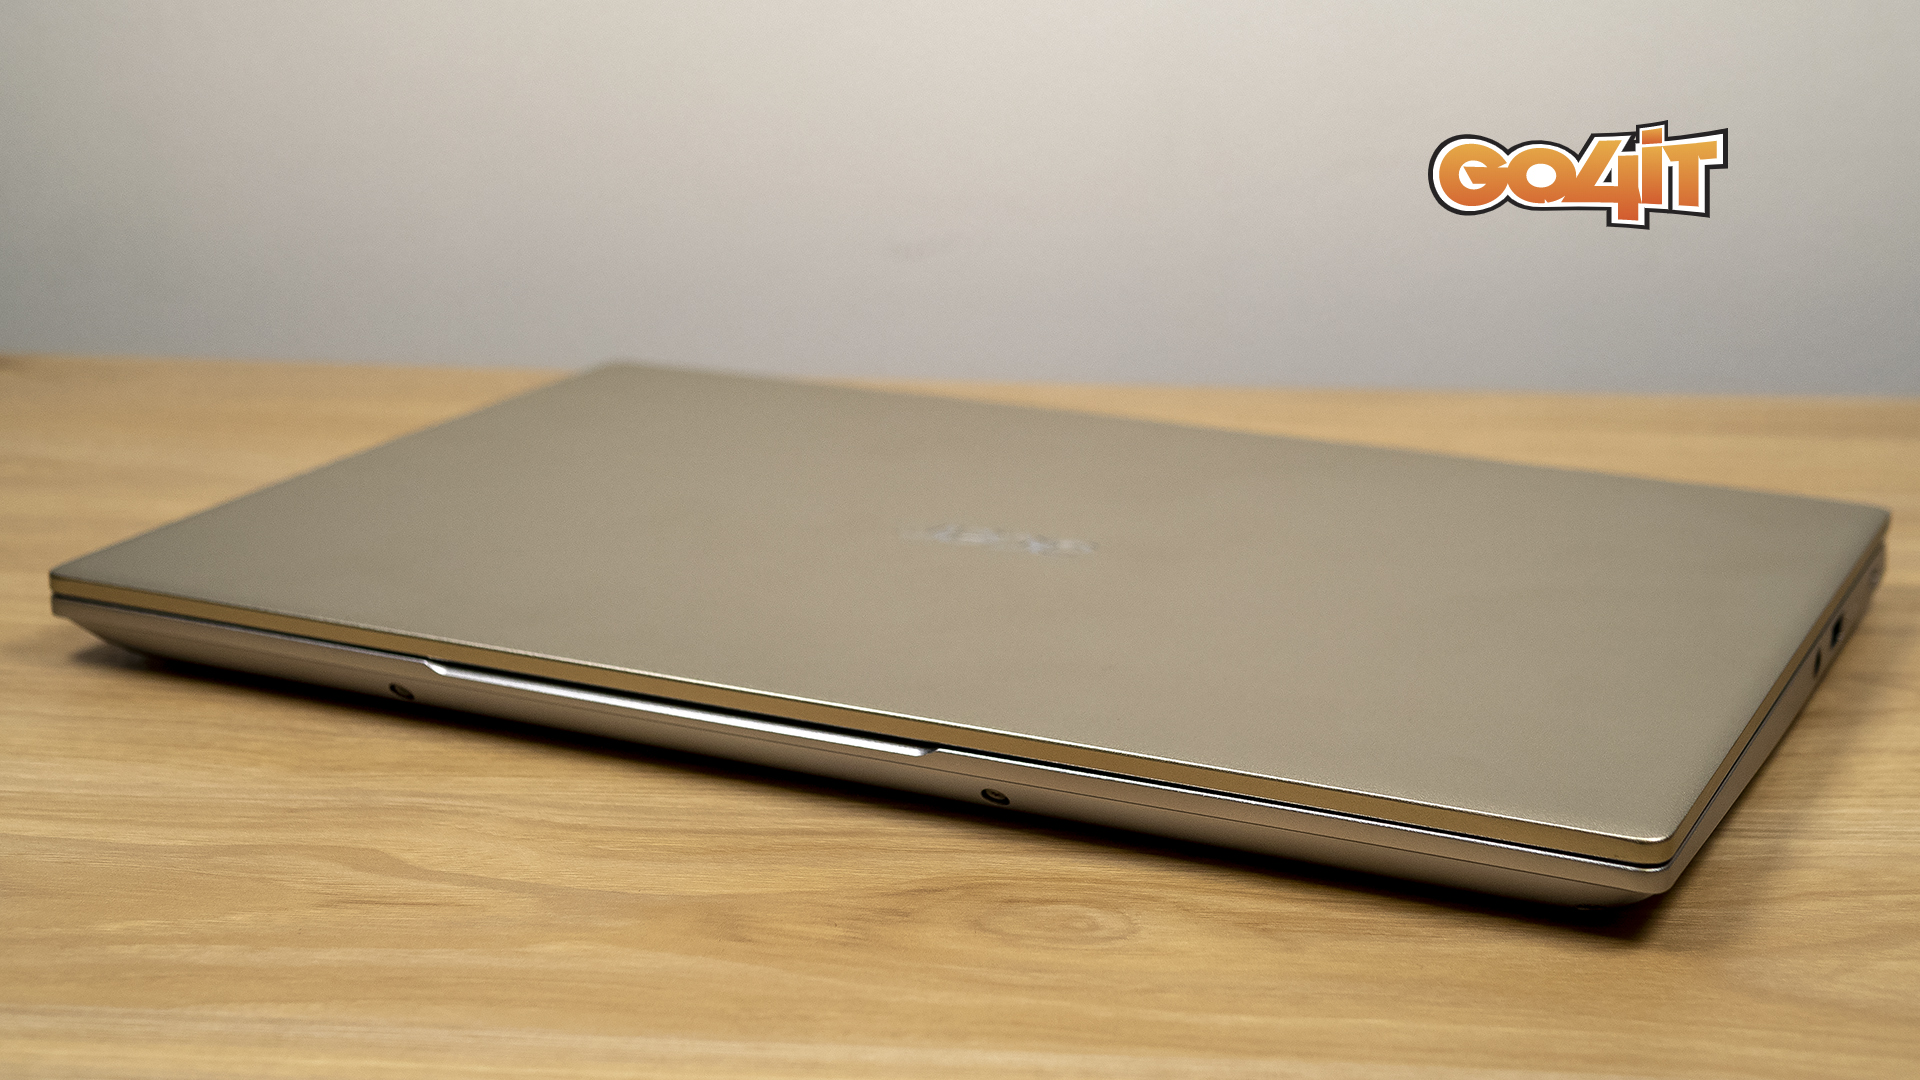 Acer Swift x closed